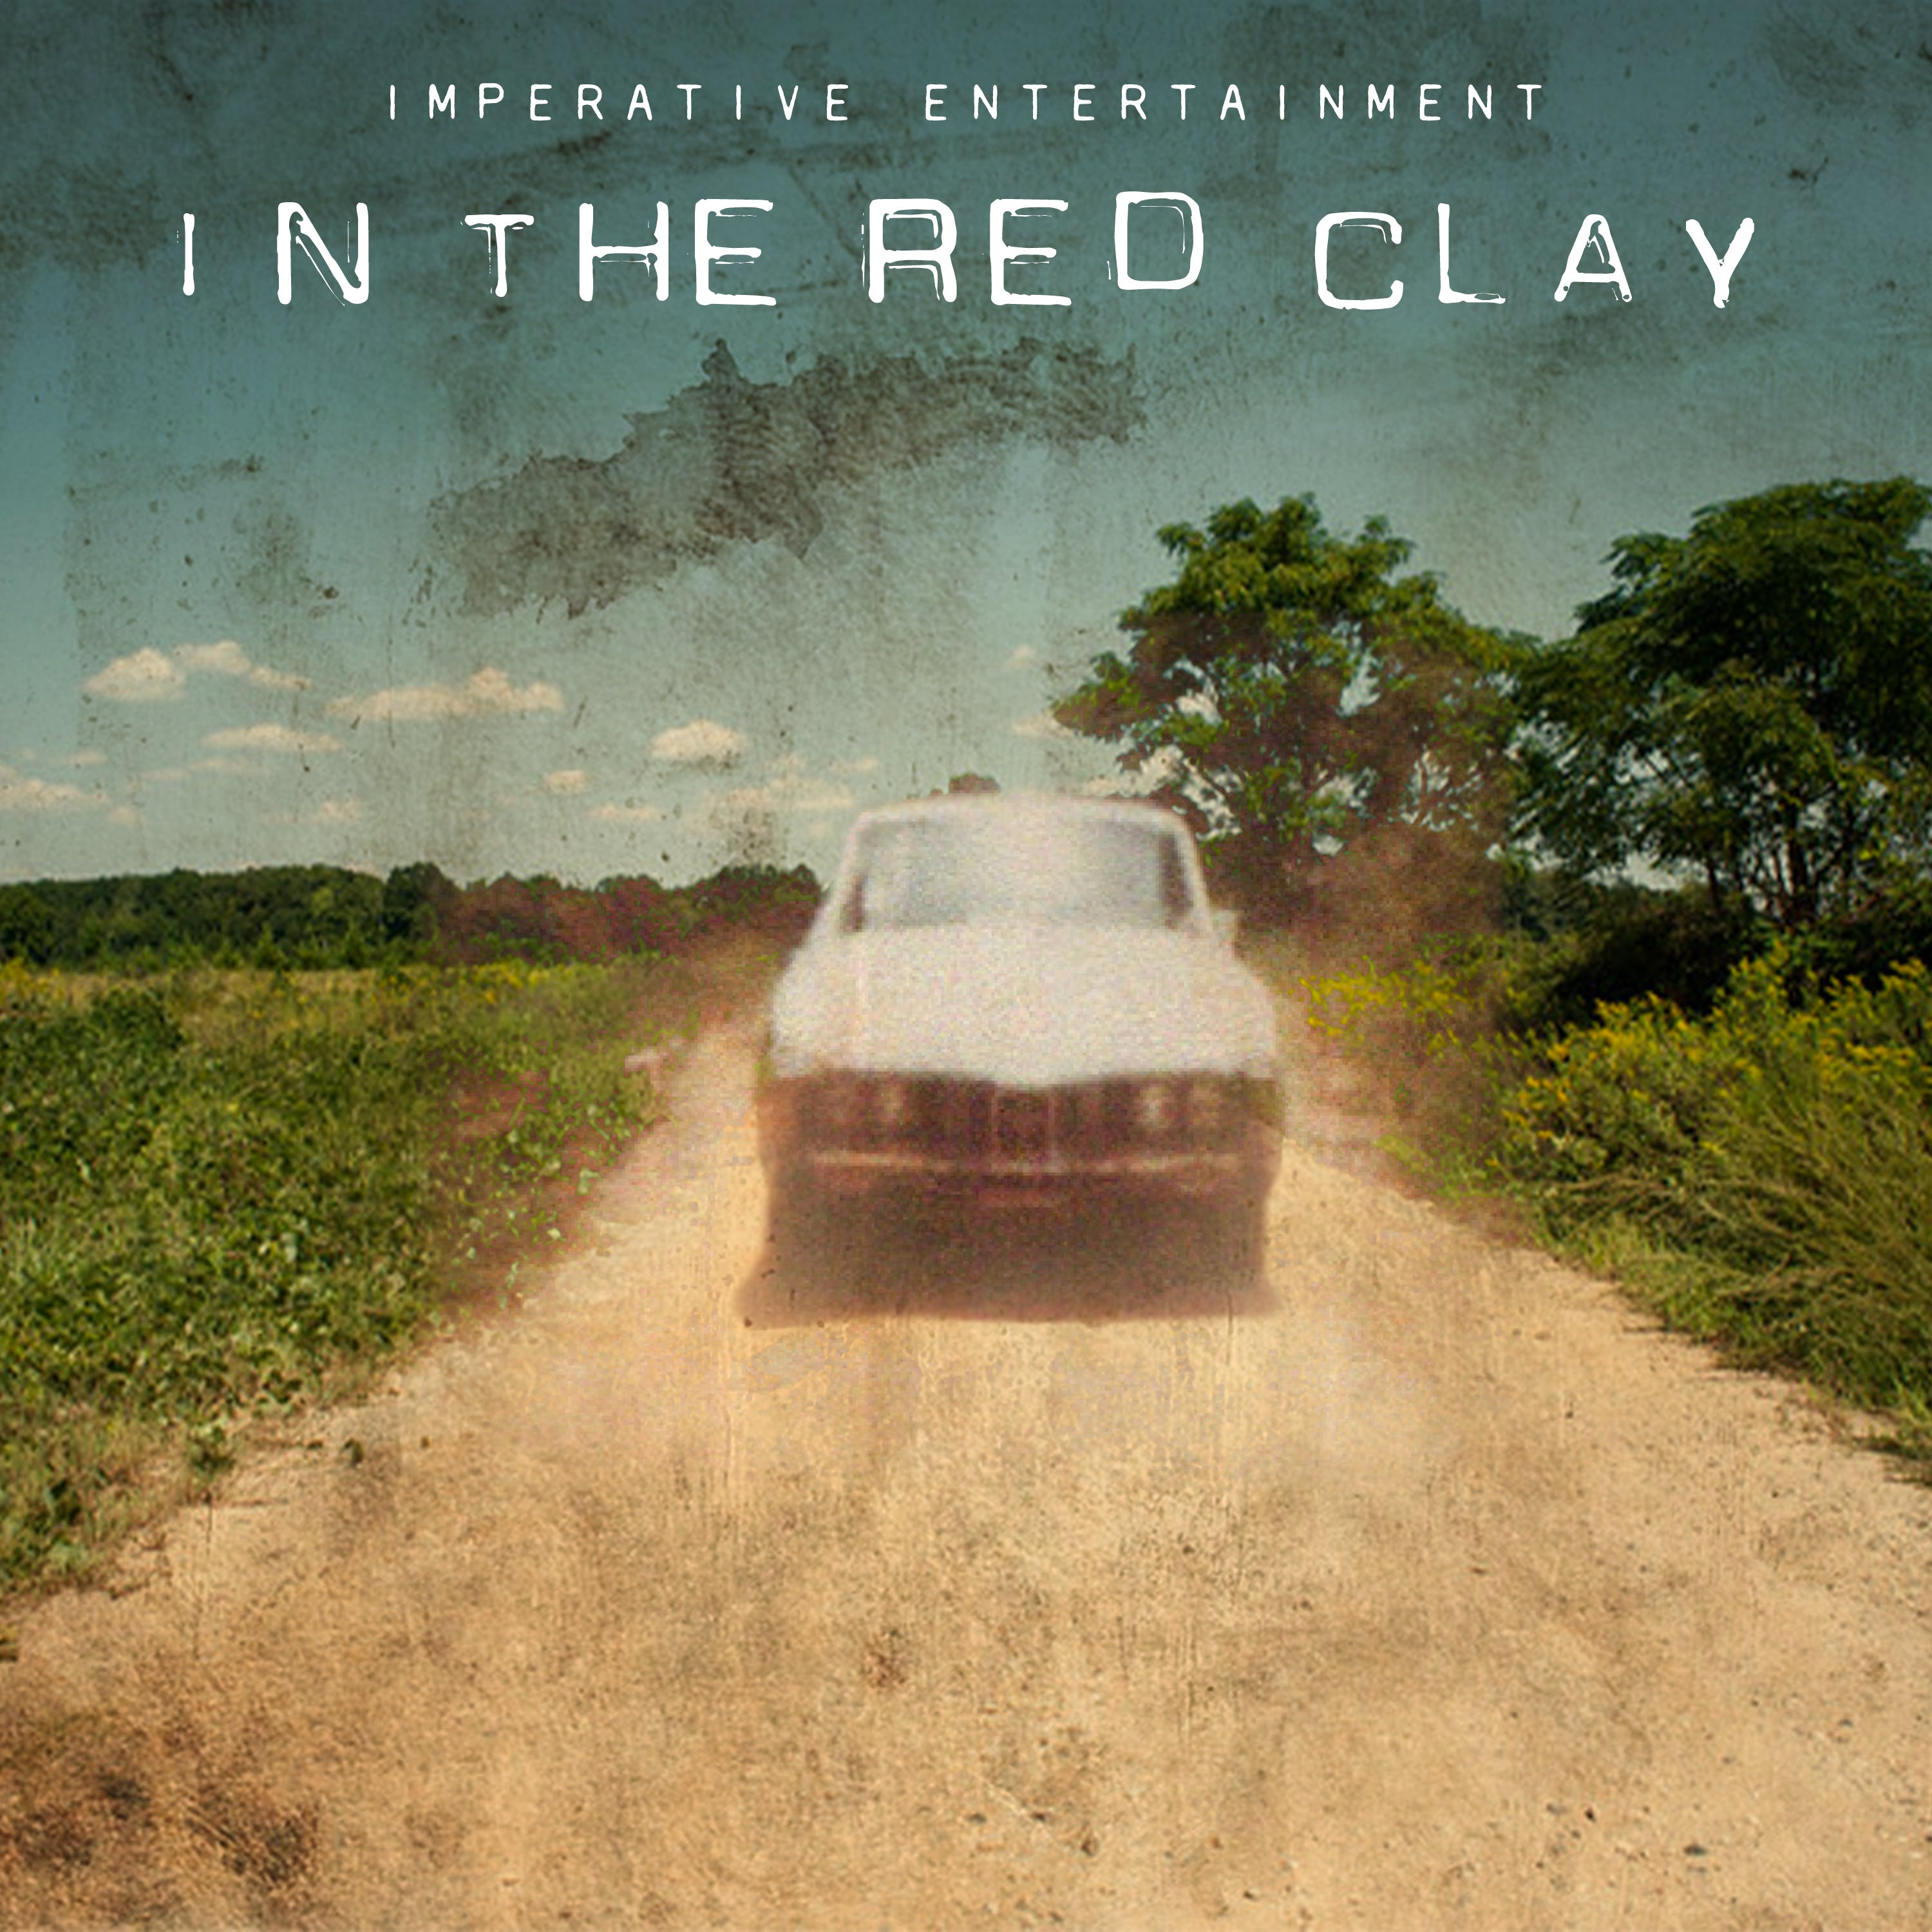 In the Red Clay by Imperative Entertainment